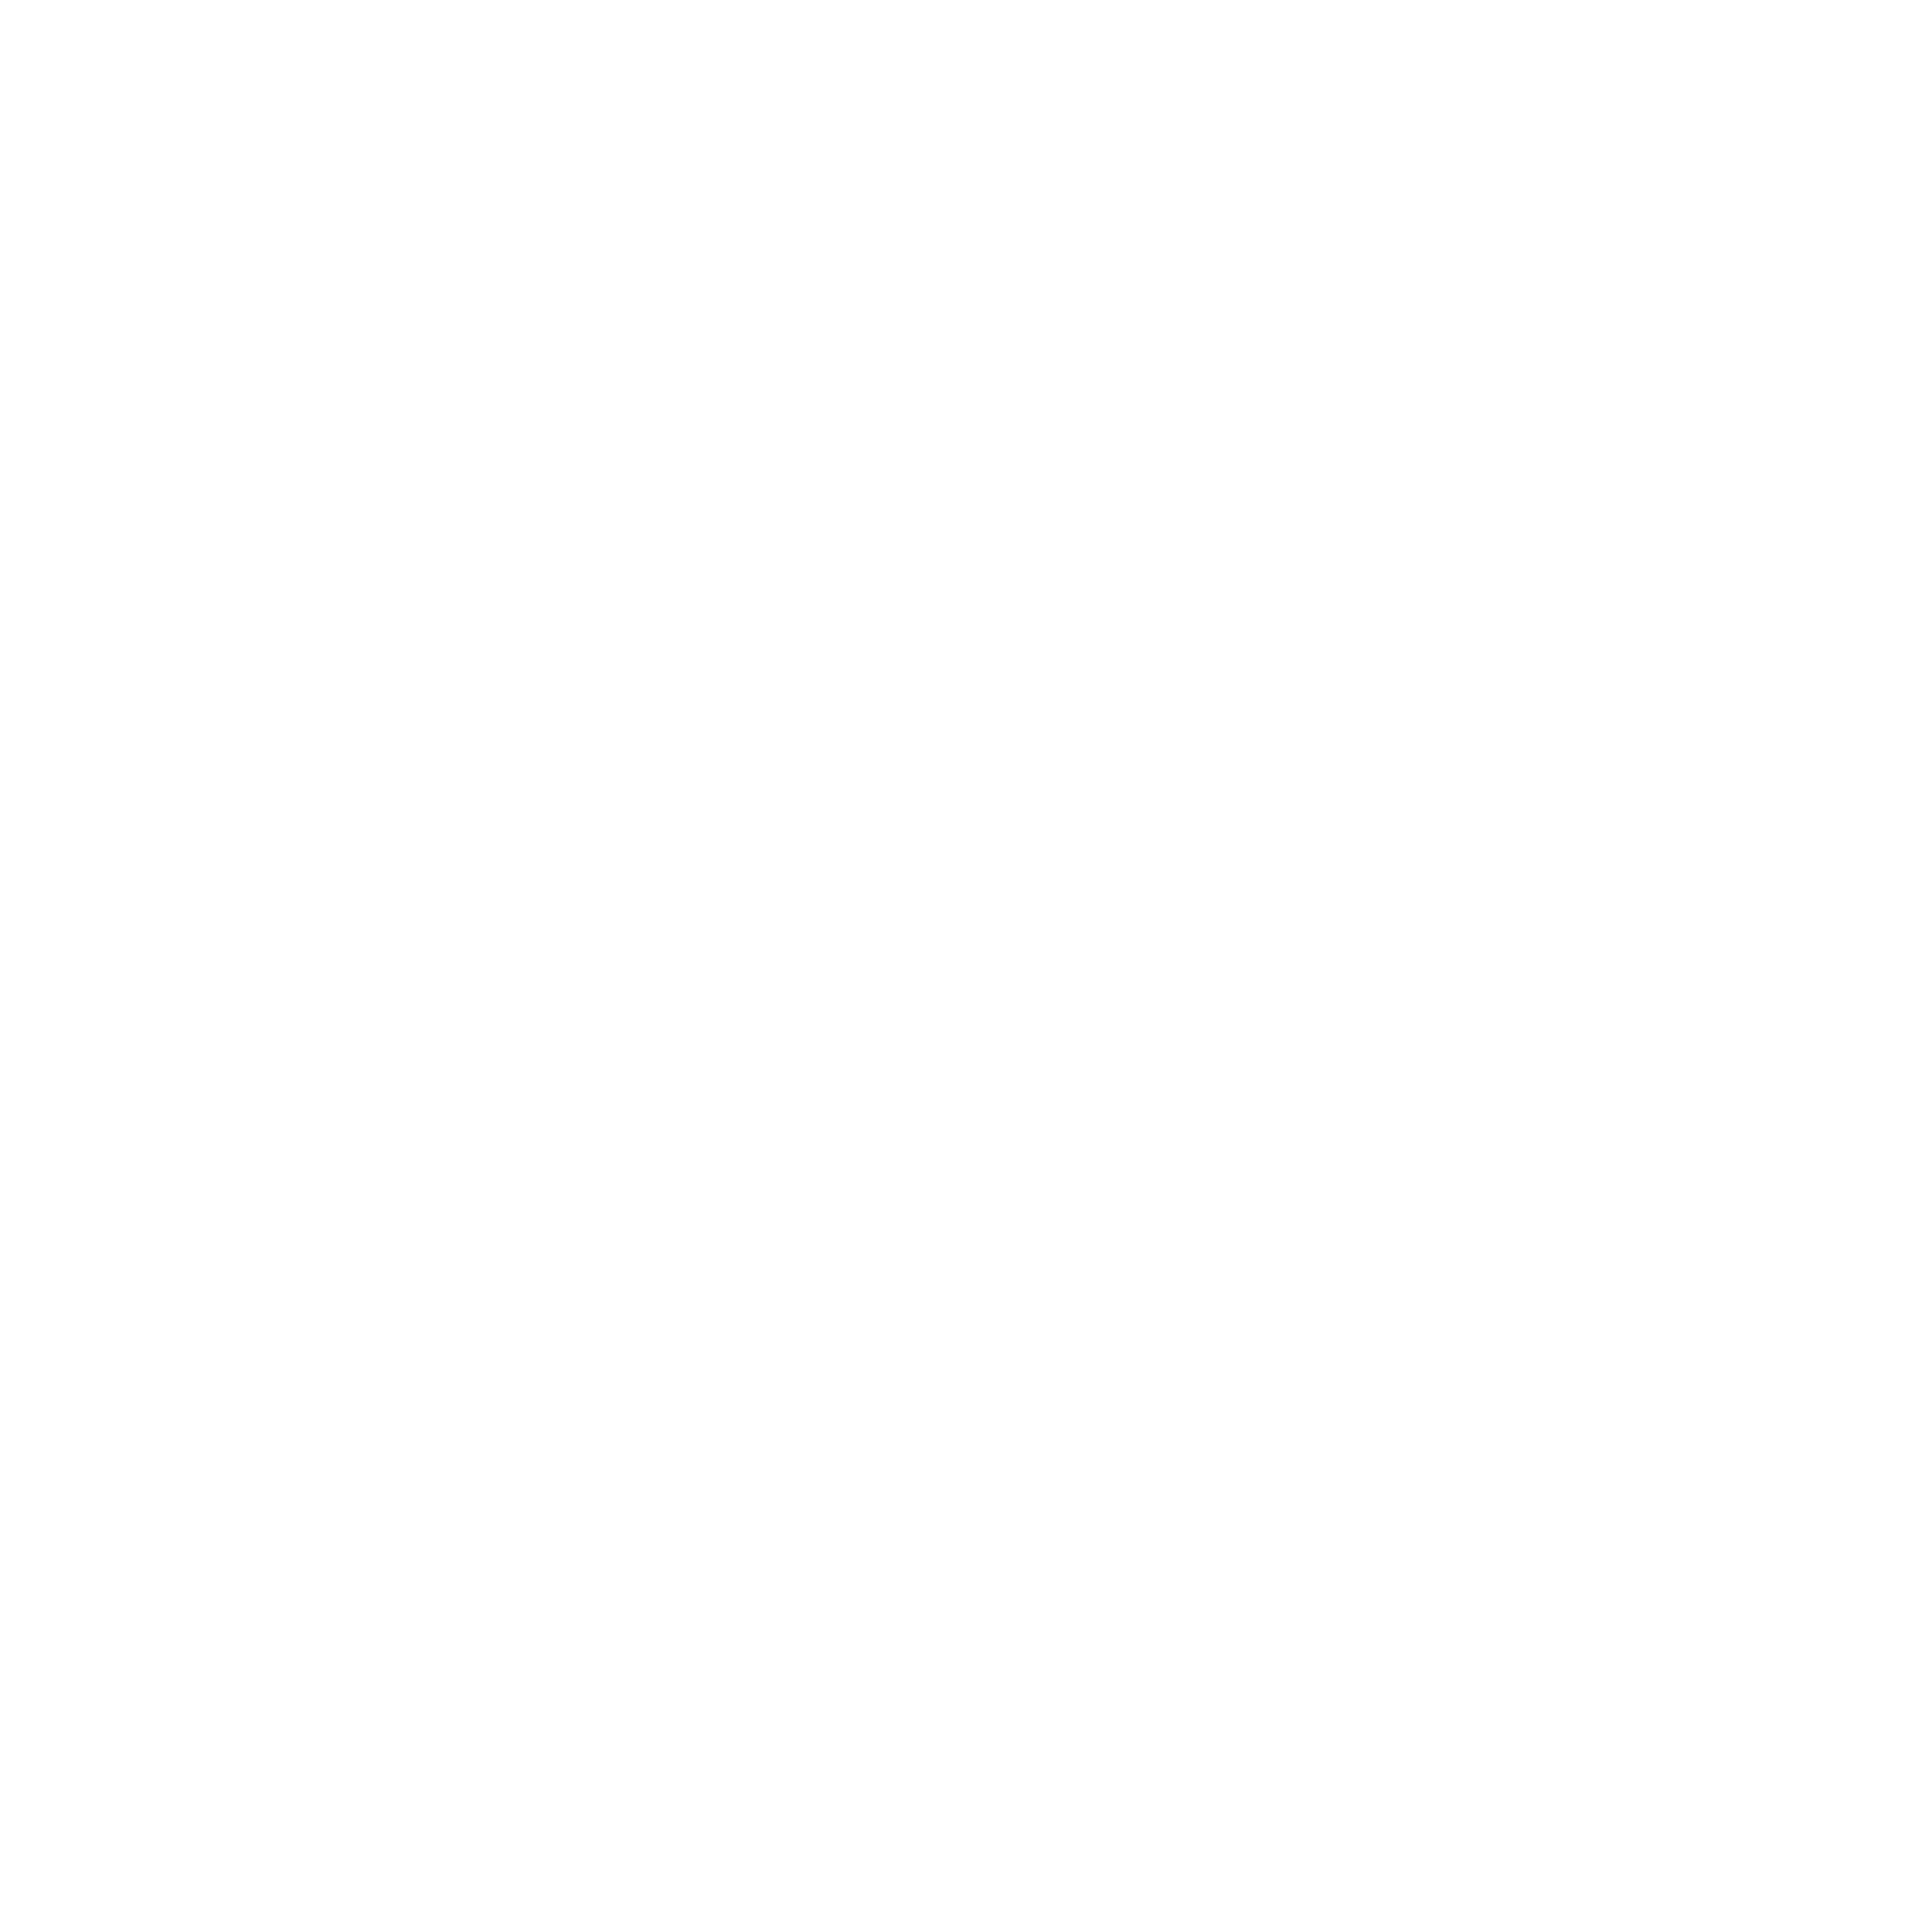 Ciudades con futuro, responsables con el espacio donde vivimos.